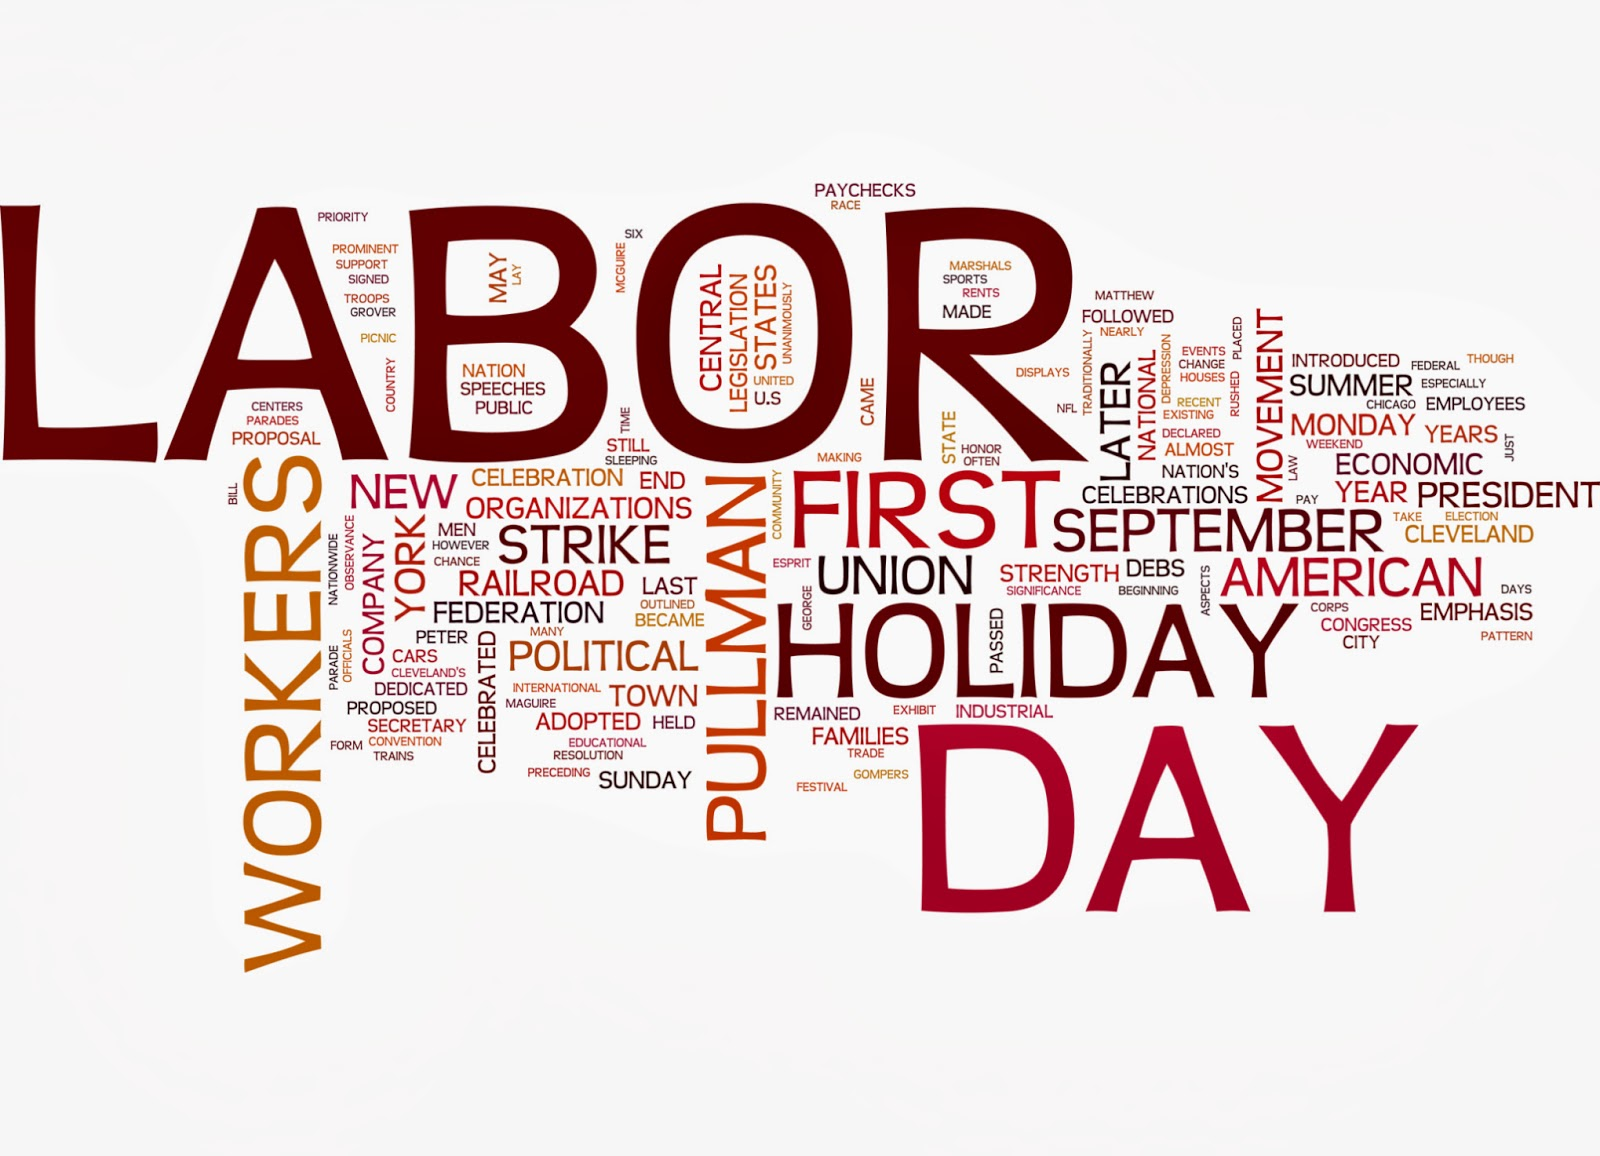 Happy labor day wishes hd wallpaper image photo picture free happy labor day wishes hd photos pictures free download kristyandbryce Image collections